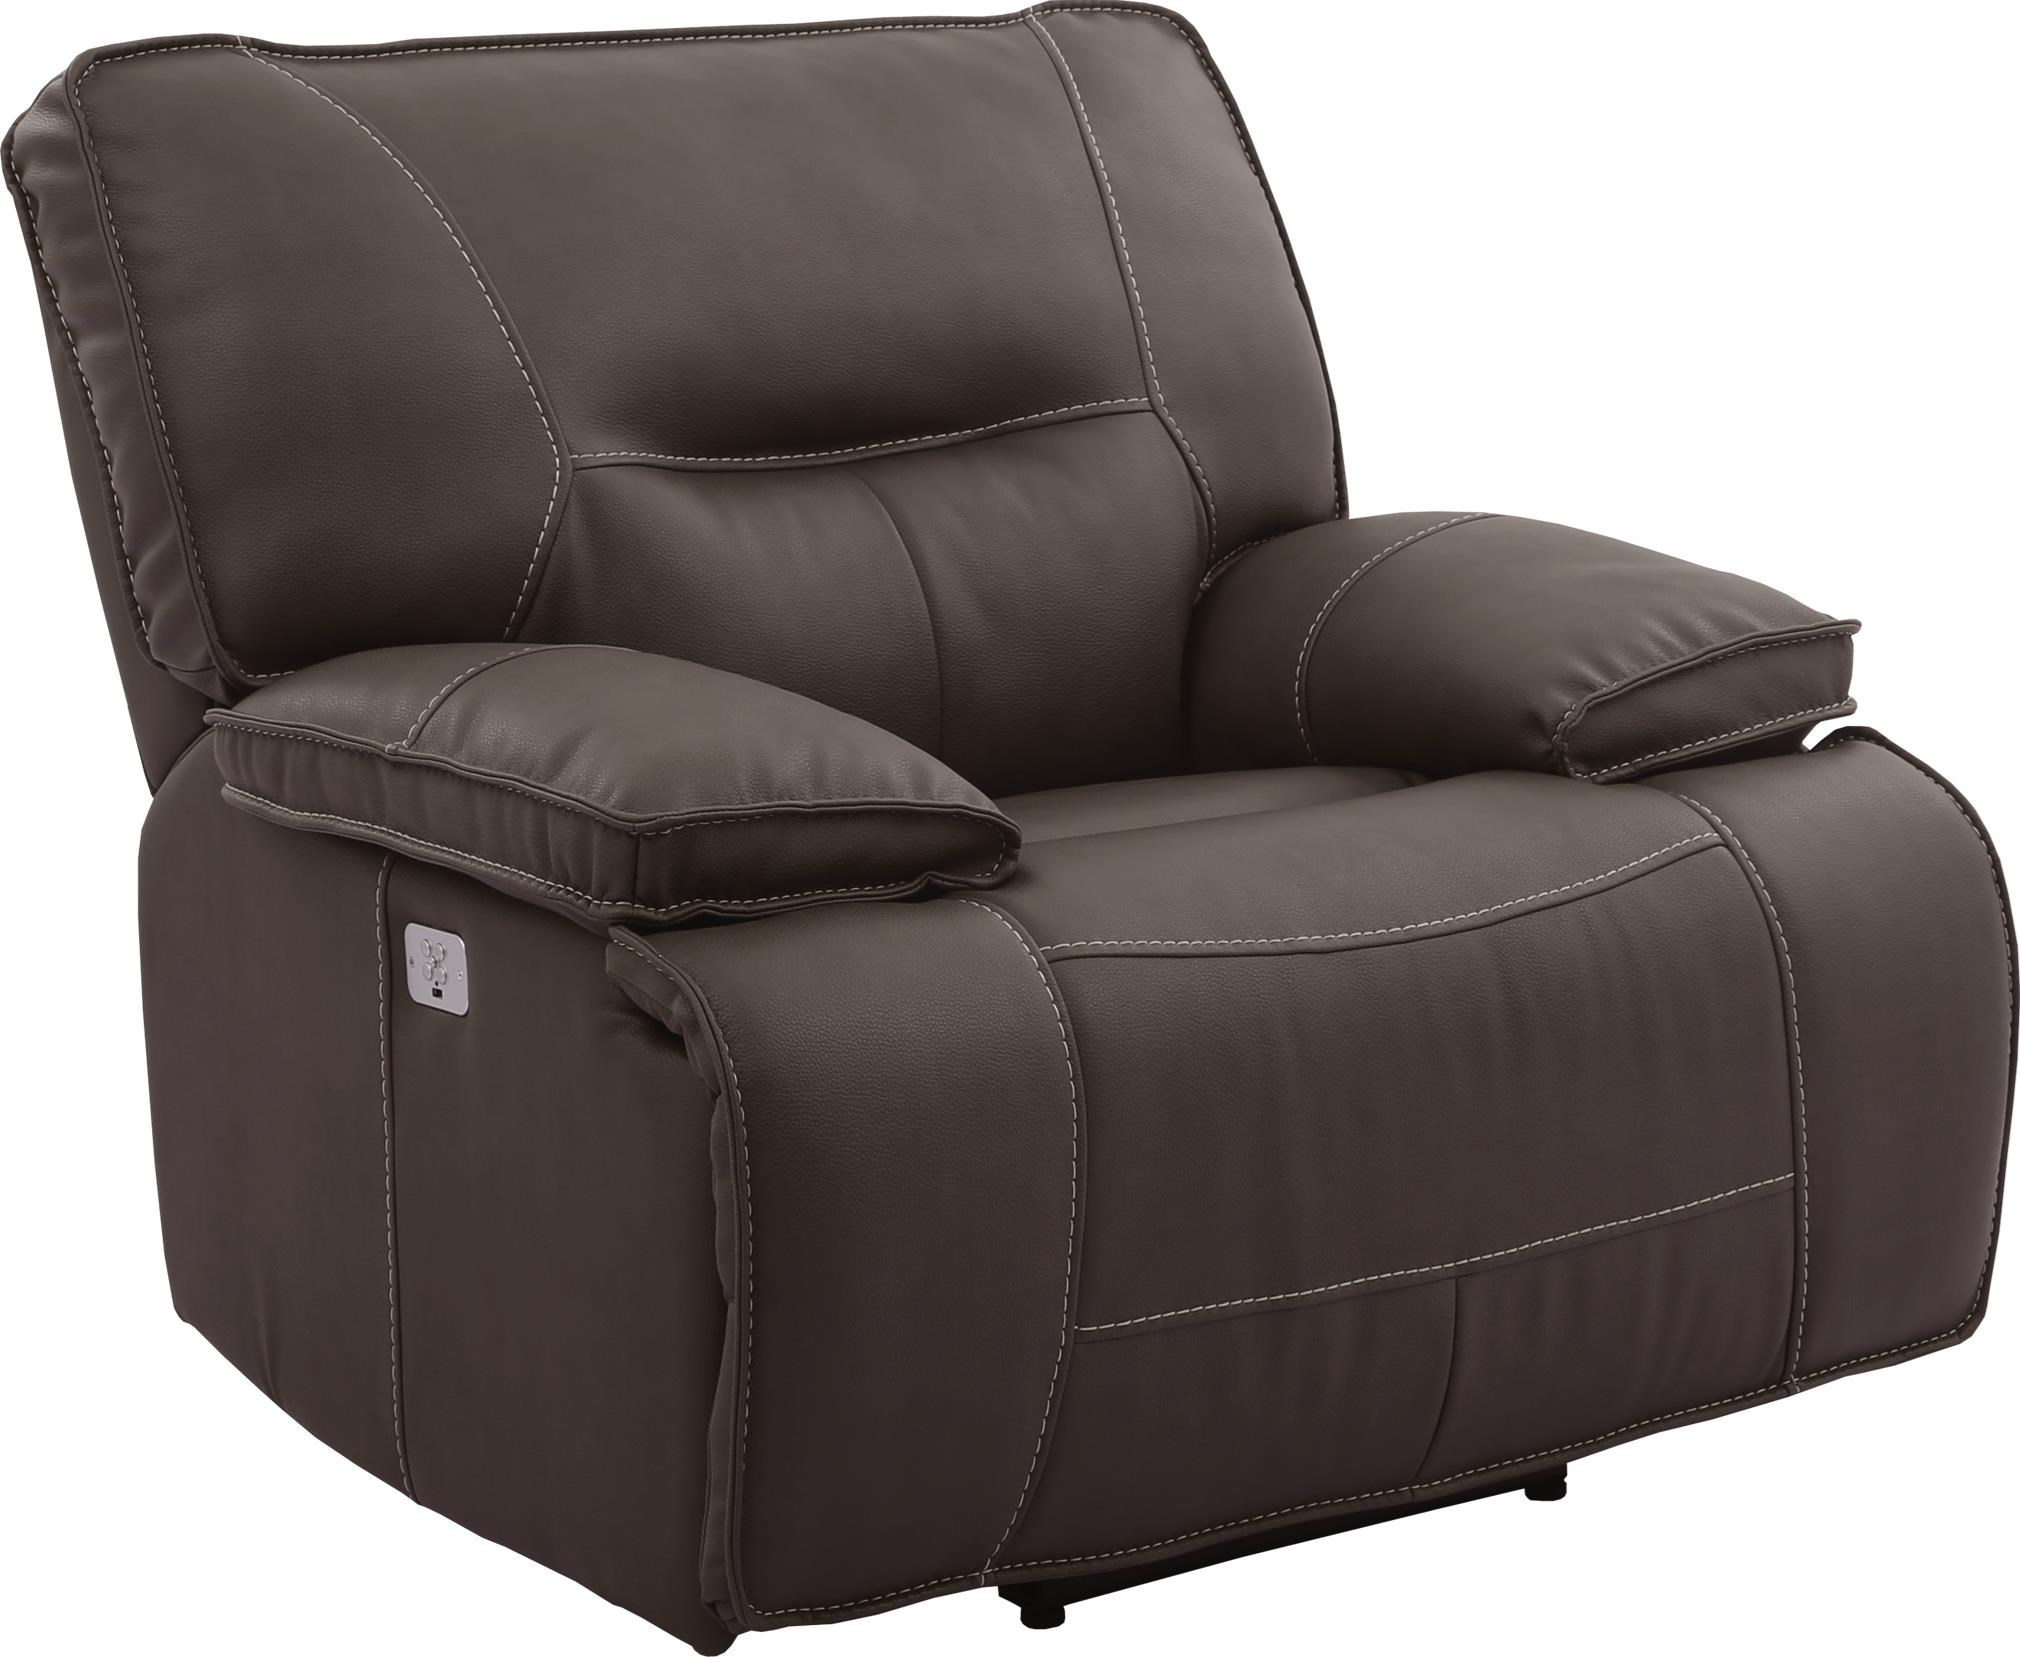 SPARTACUS Power Recliner by Parker House at Beck's Furniture